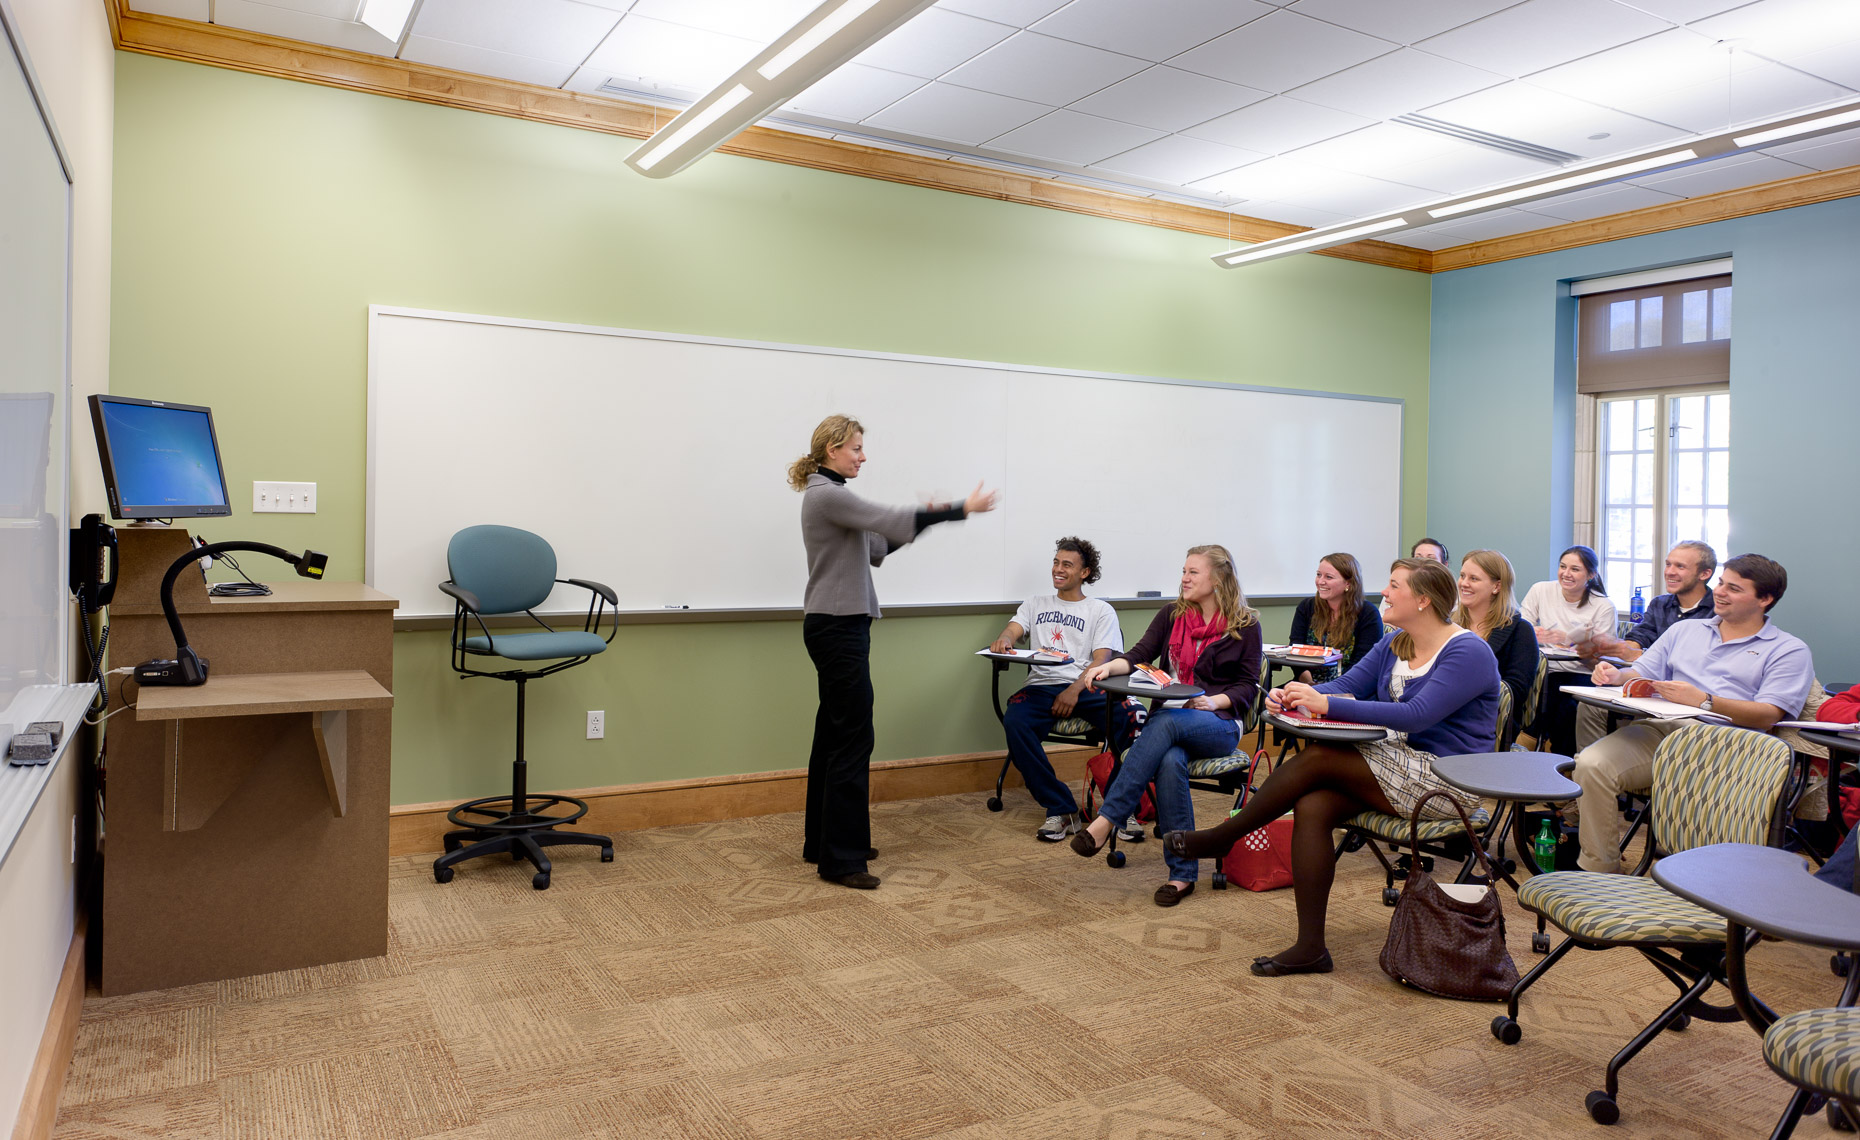 Virginia Hamrick Photography - Classroom University of Richmond International Center - Academia